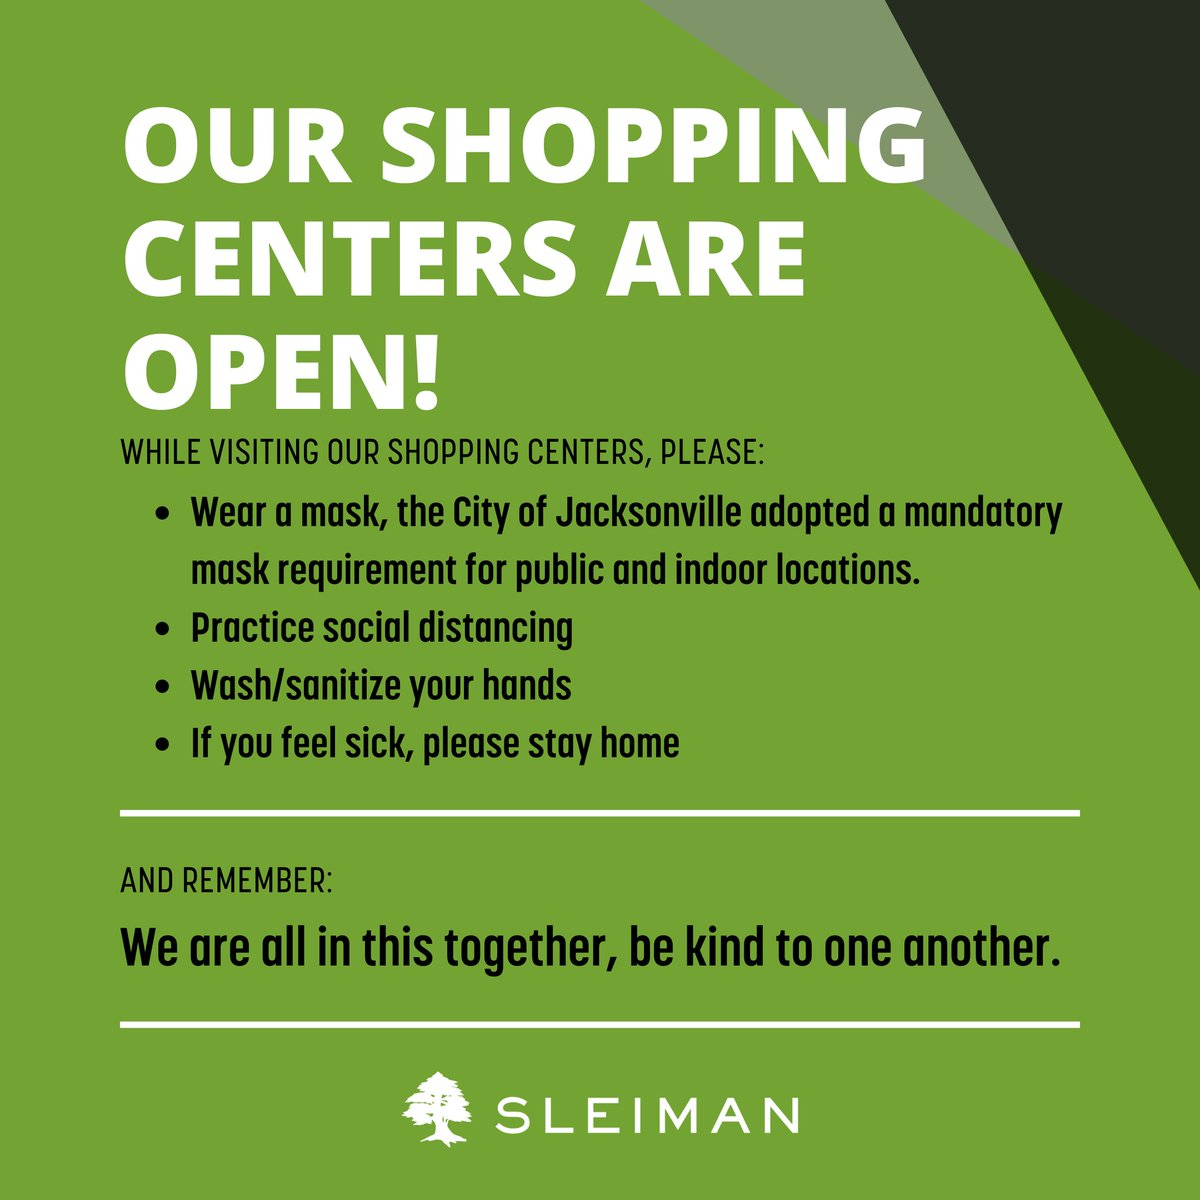 The health and safety of our customers, tenants, employees and communities remains our #1 priority. #sleiman #sleimanproperty #jax #jacksonville #business #jaxfl #florida #realestate #retail #leasing #commercialrealestate https://t.co/ccygYQjU8n